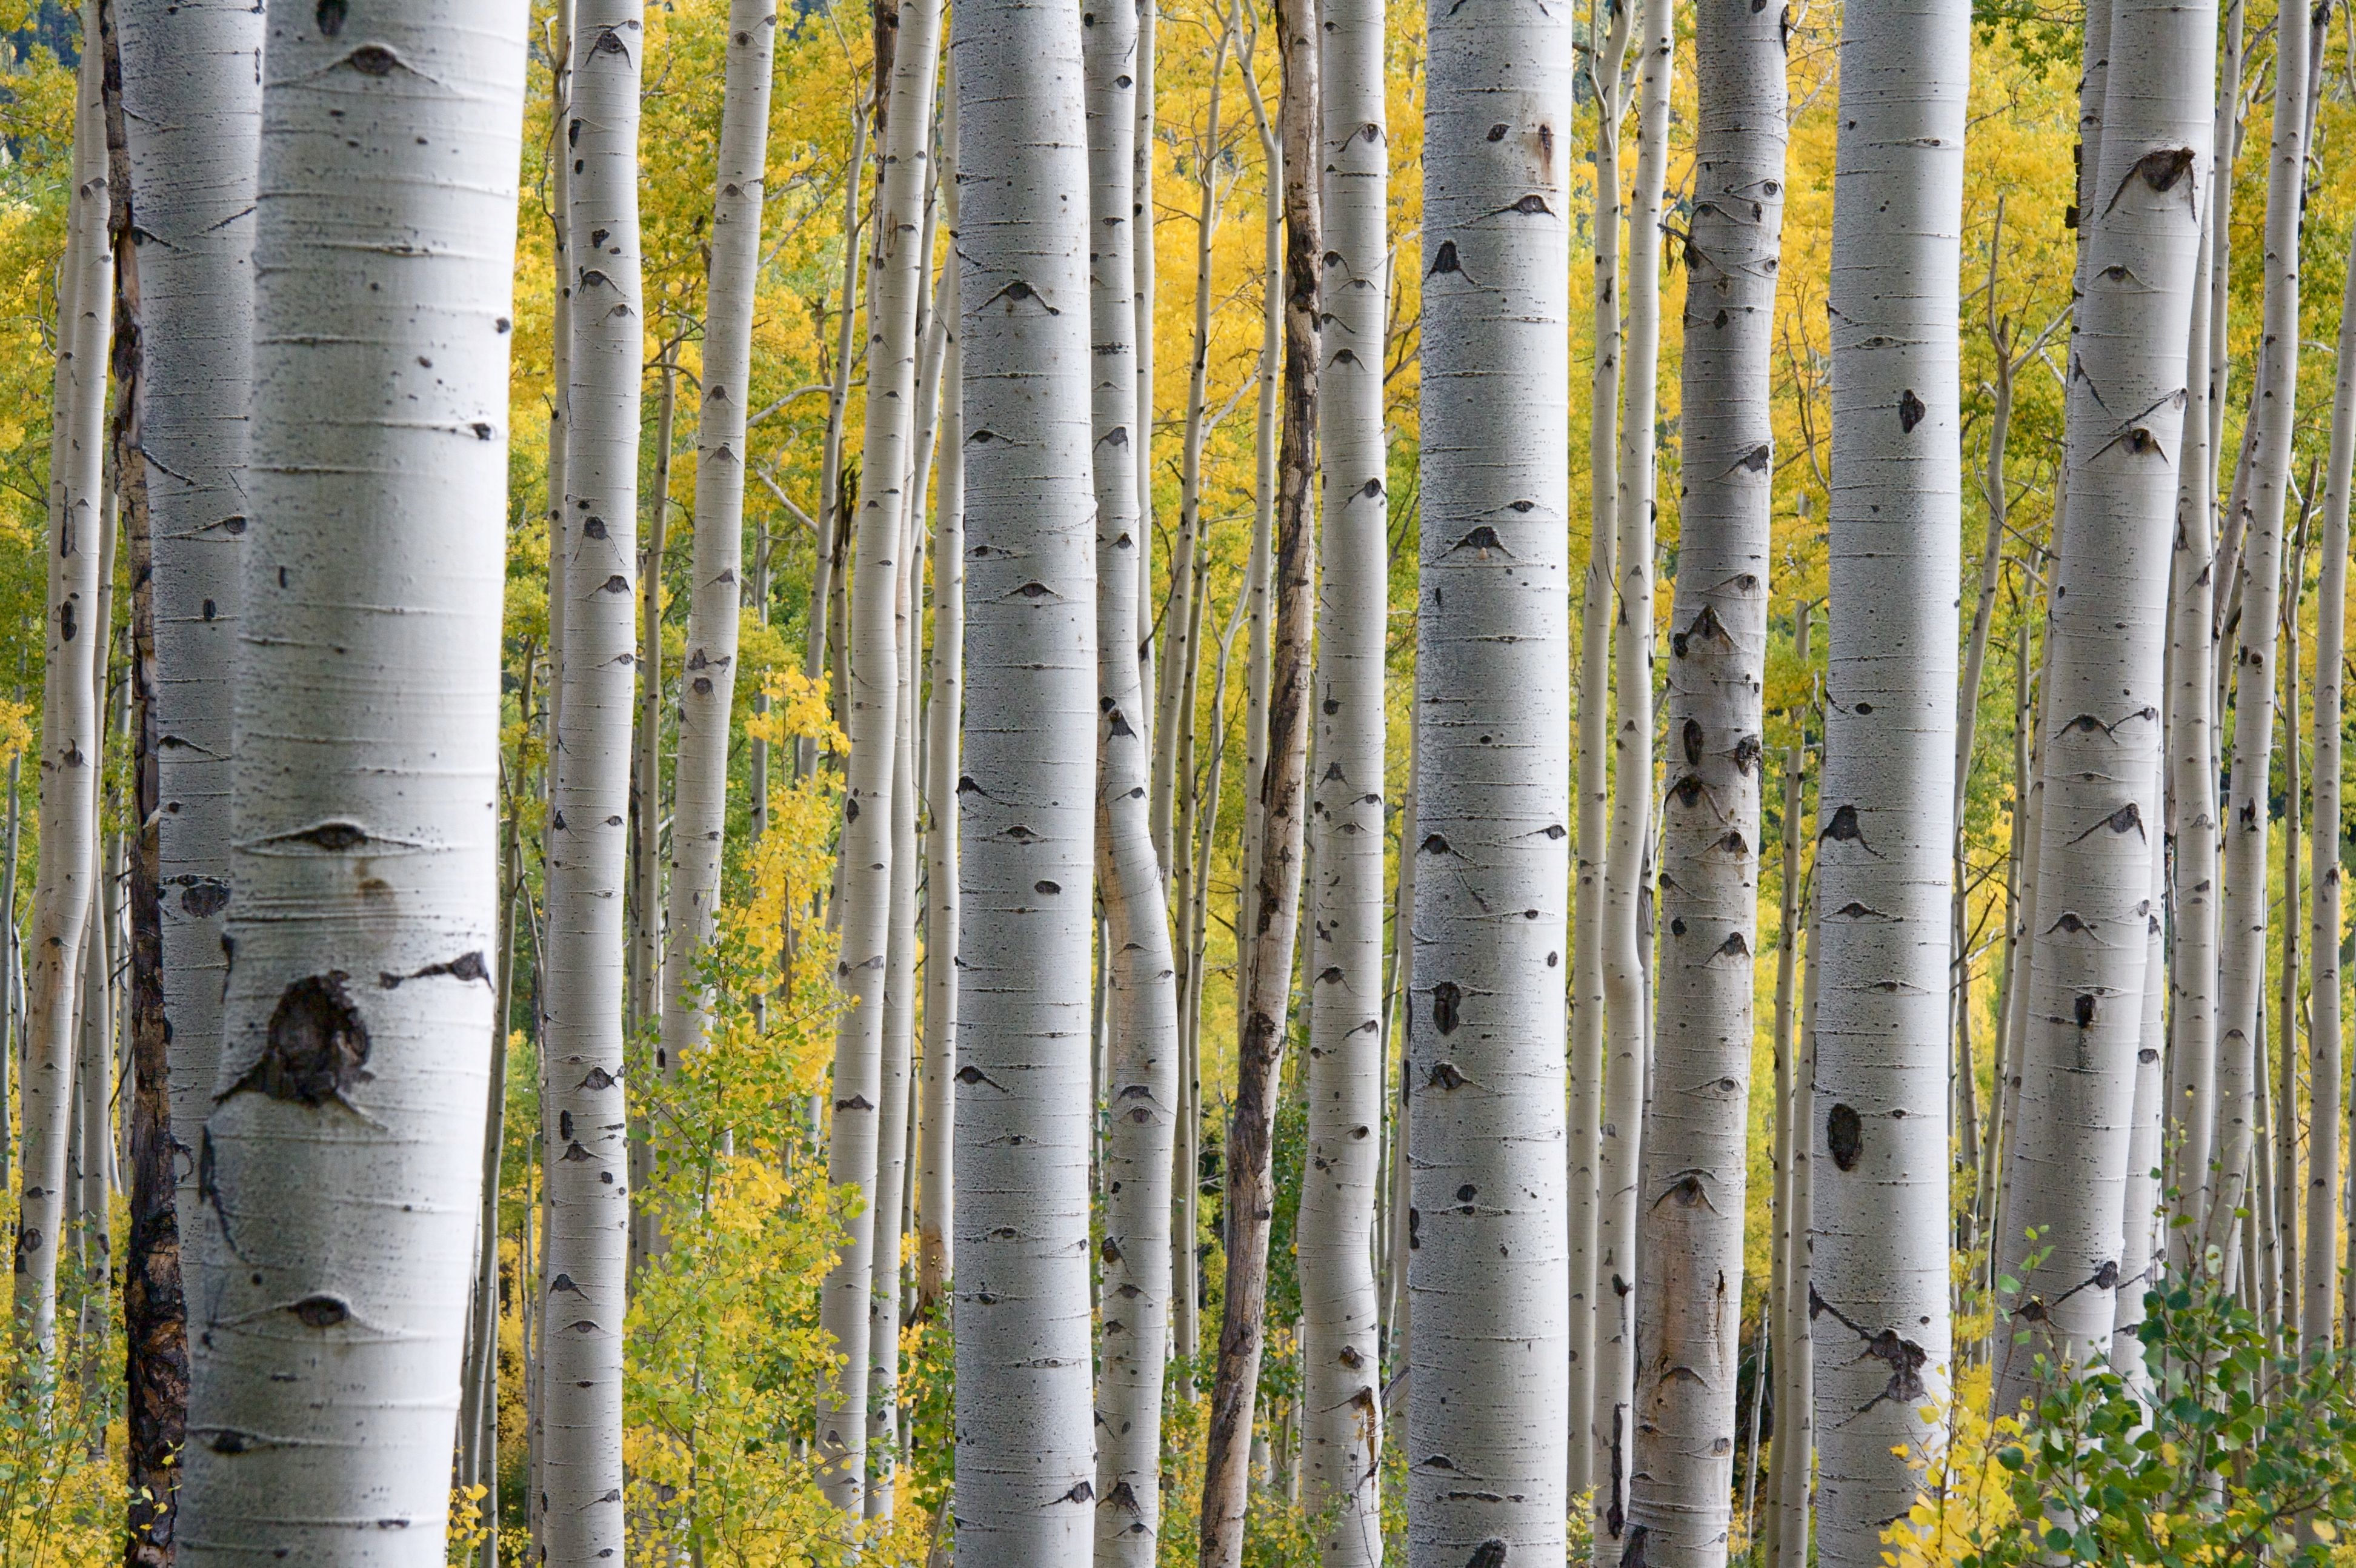 Birch and beech trees